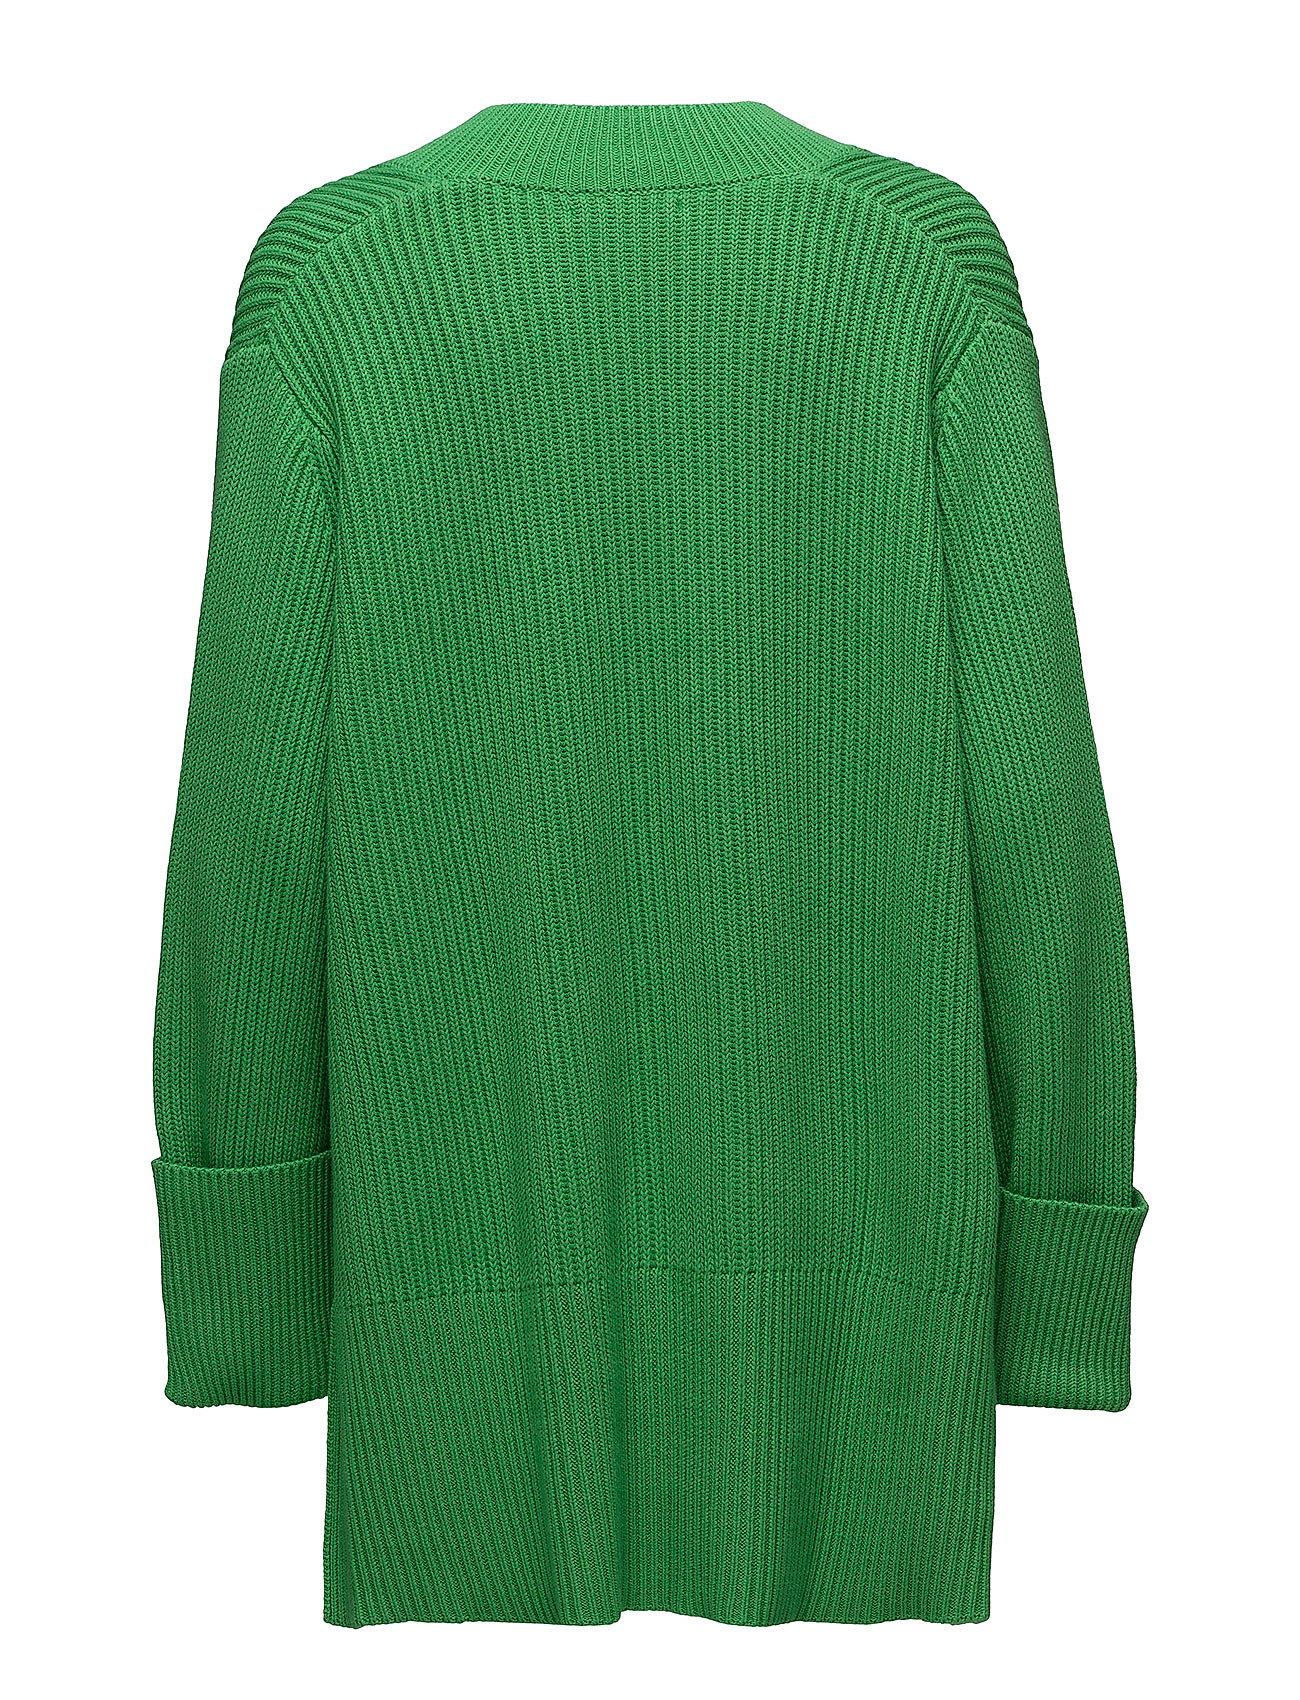 Moon Moon Moon Sweaterpea GreenHope Sweaterpea GreenHope Sweaterpea Moon GreenHope GqUVLMSzp